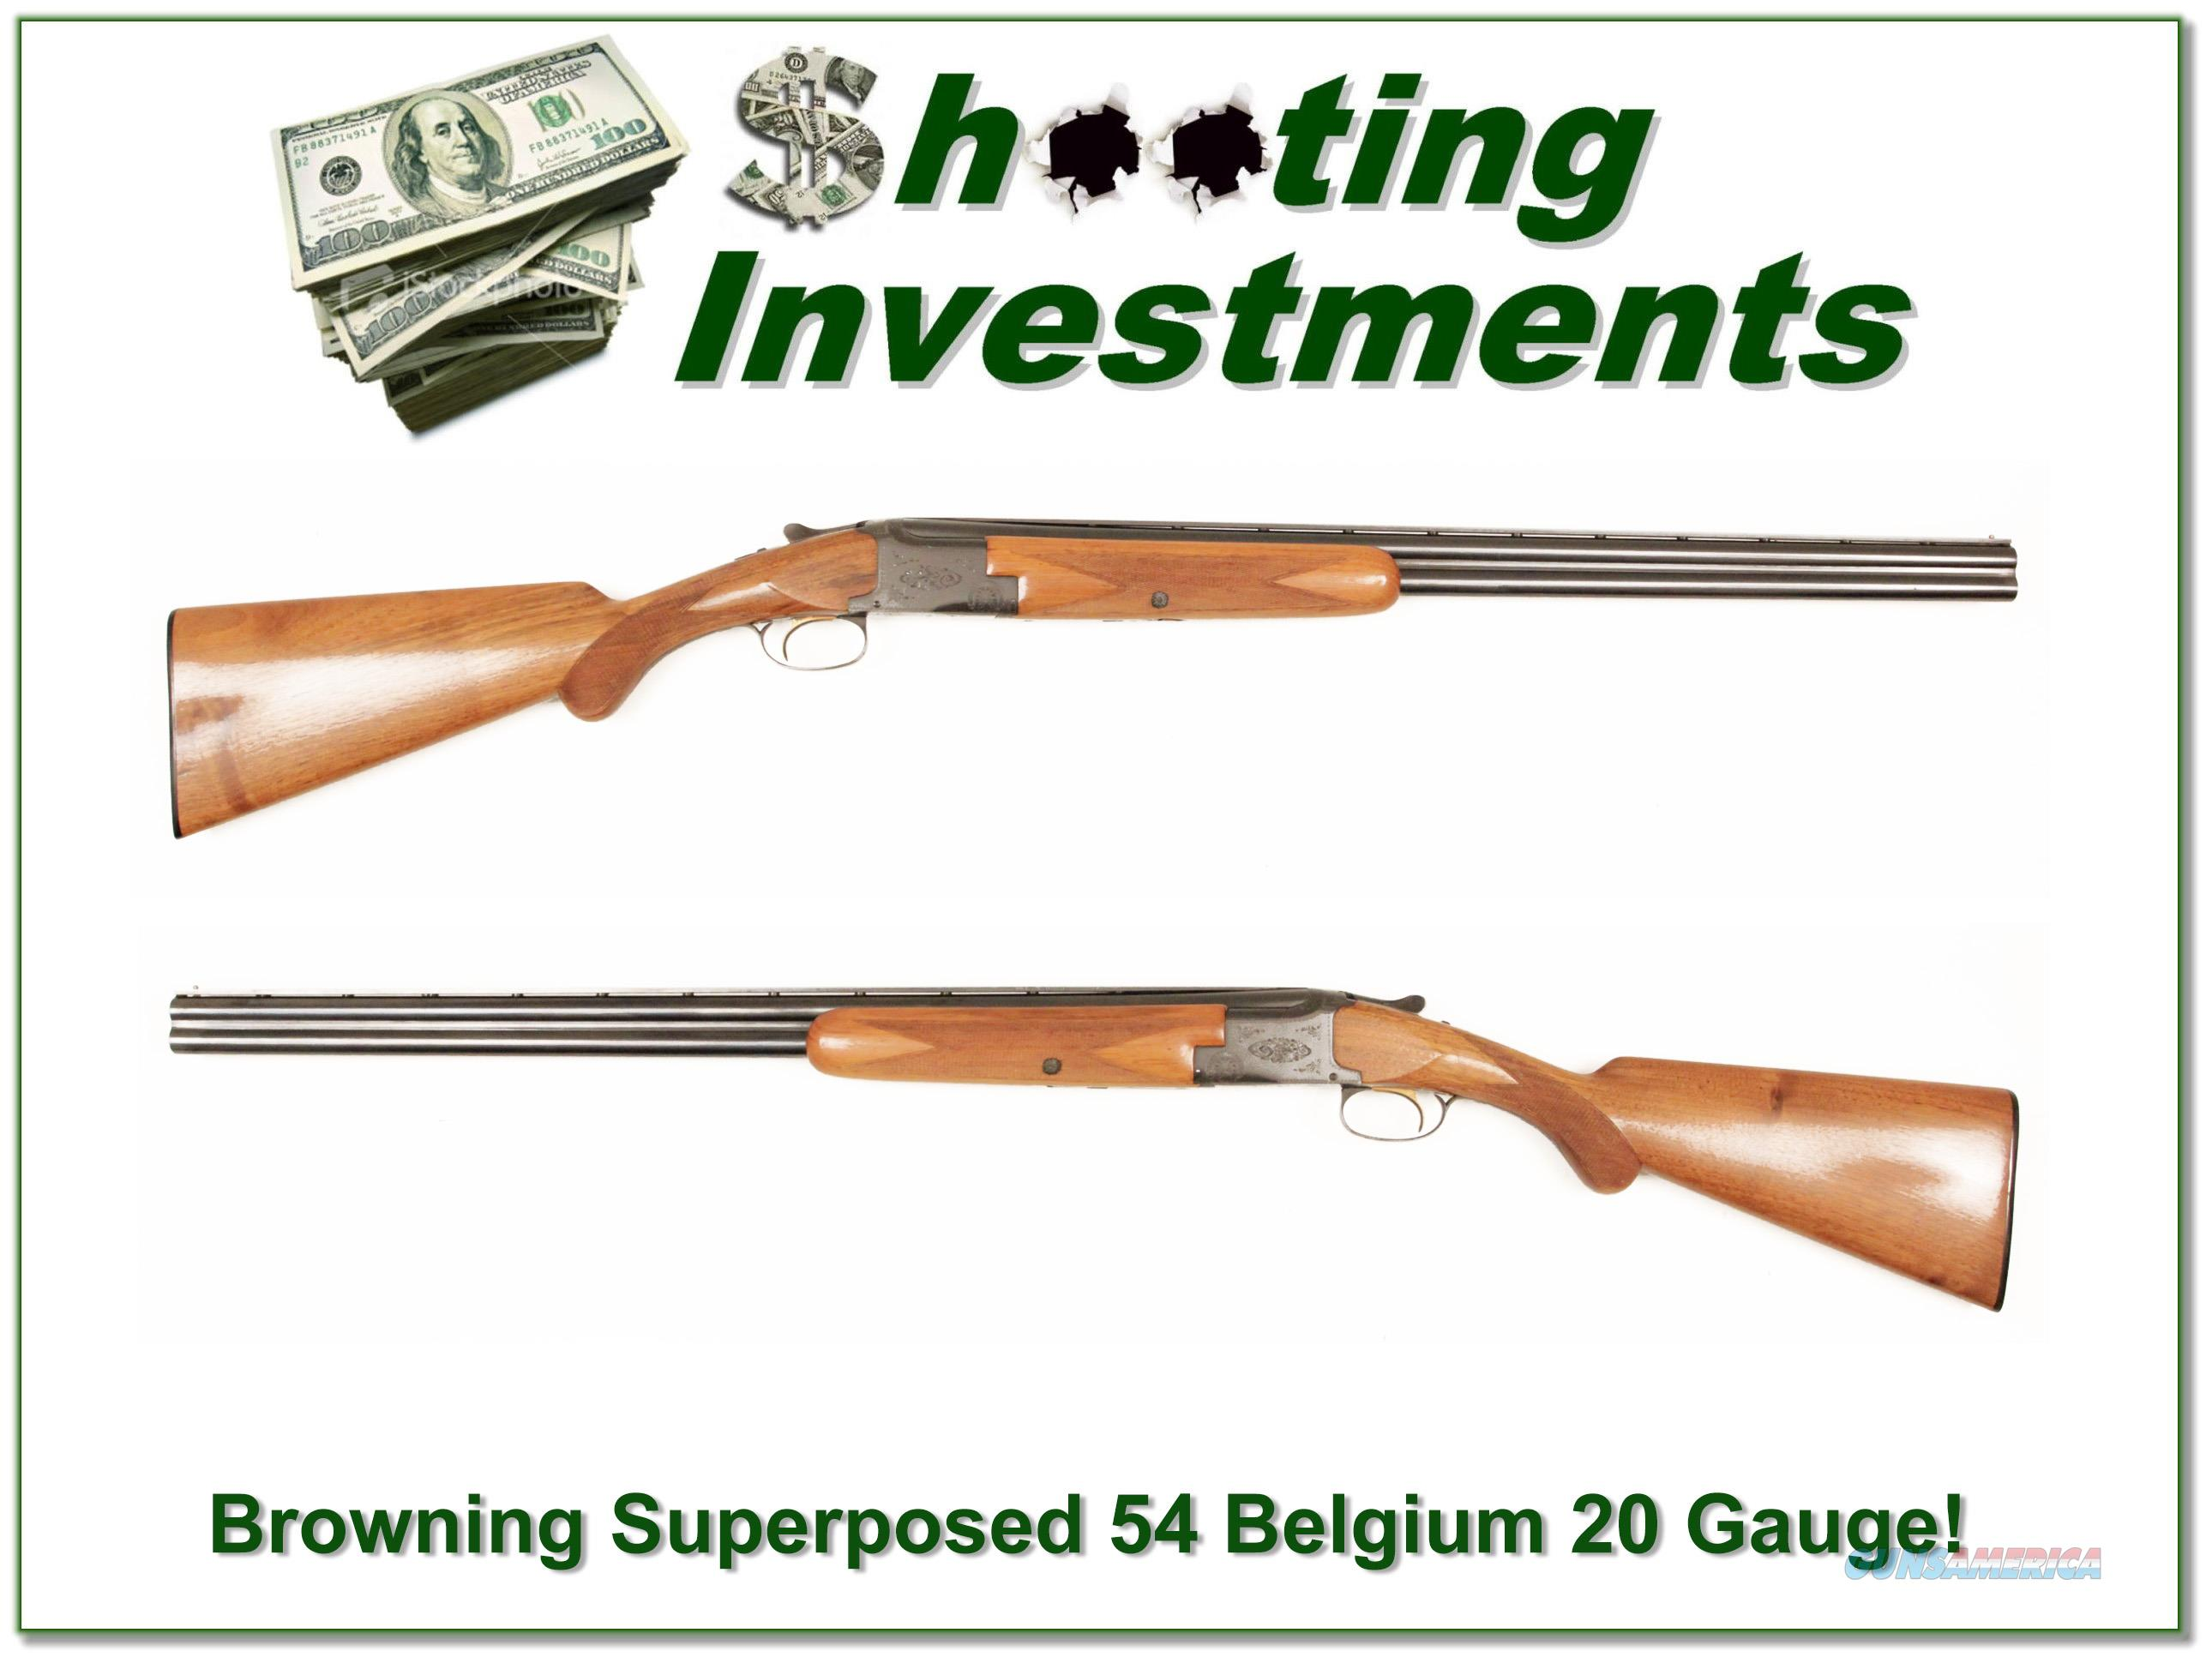 Browning Superposed 20 Gauge 54 Belgium!  Guns > Shotguns > Browning Shotguns > Autoloaders > Hunting